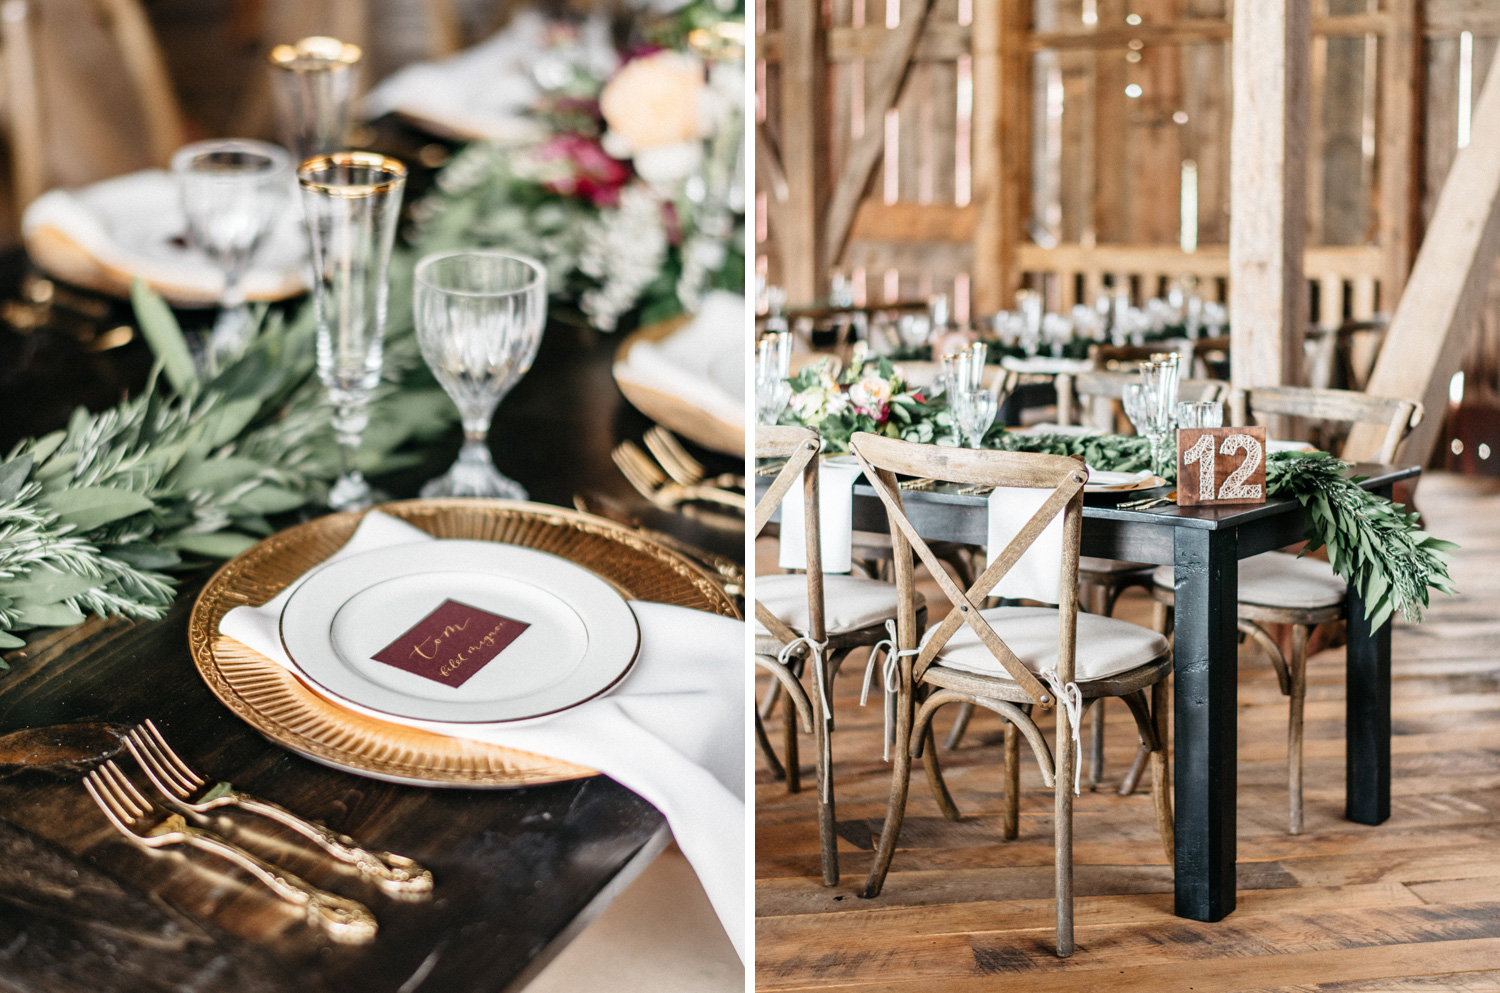 Gorgeous fall wedding details at Birch Hill Barn